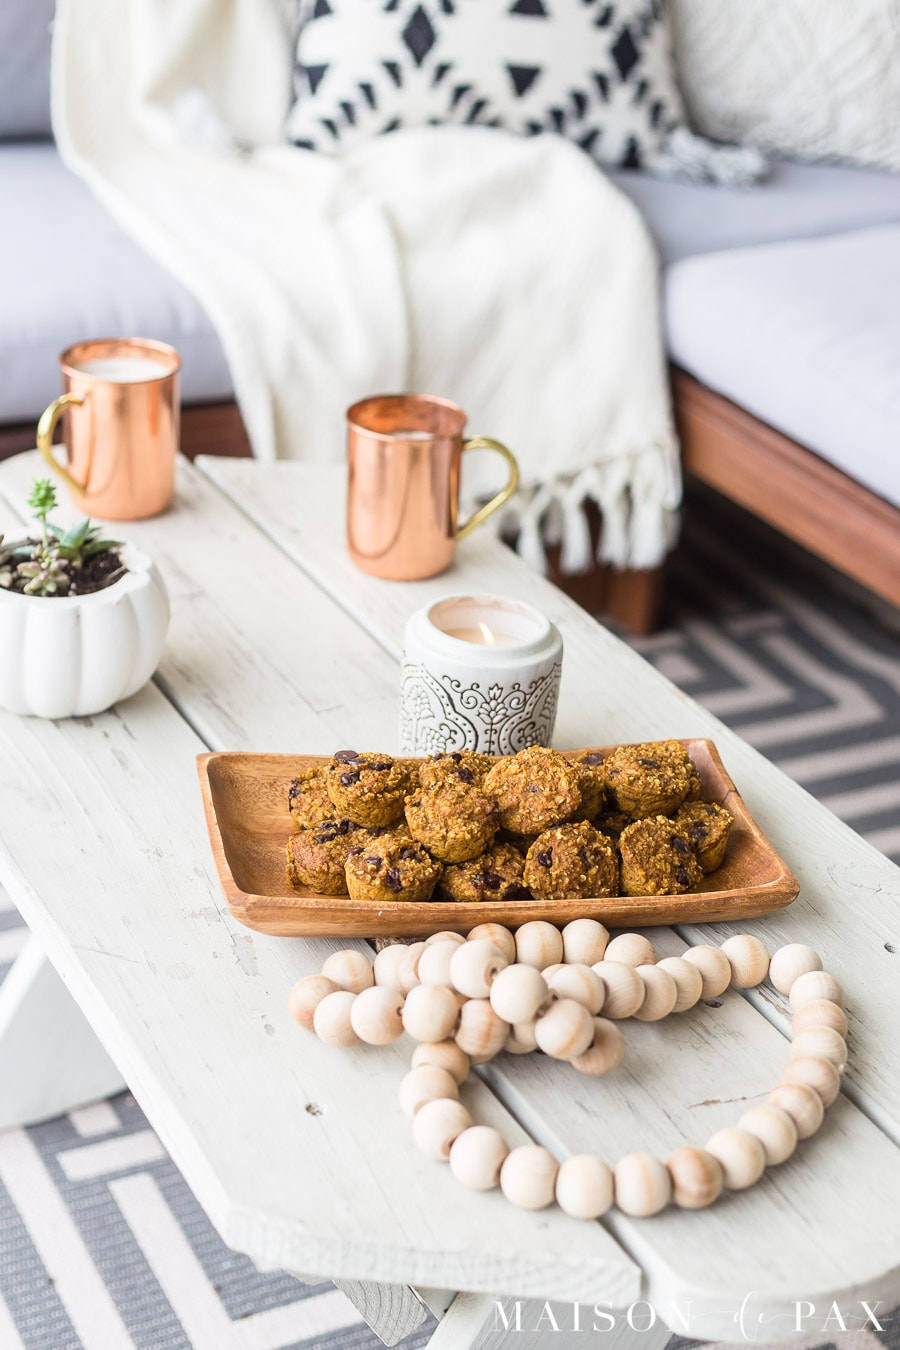 Get the recipe for this gluten free pumpkin muffin recipe and cozy fall decorating tips! #falldecor #pumkinrecipe #falldecorating